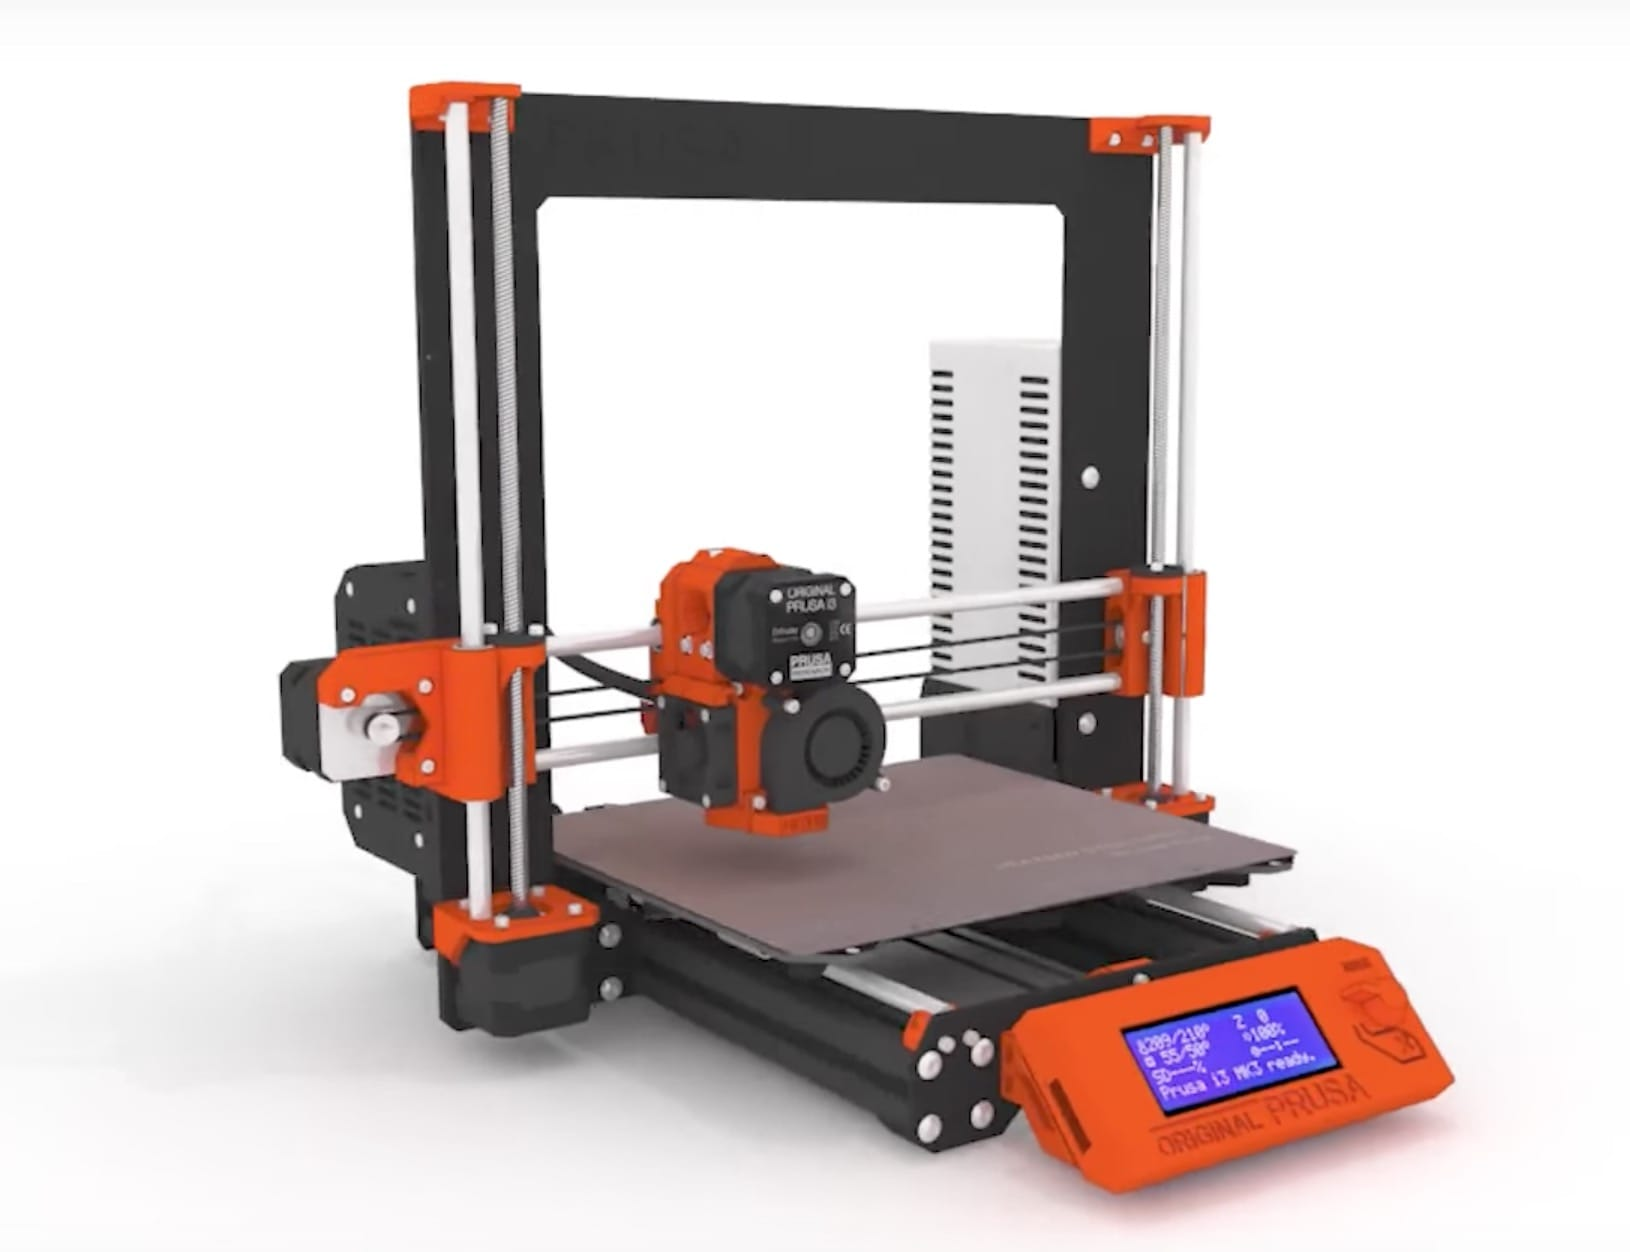 The all-new Original Prusa i3 MK3 desktop 3D printer, with many new features